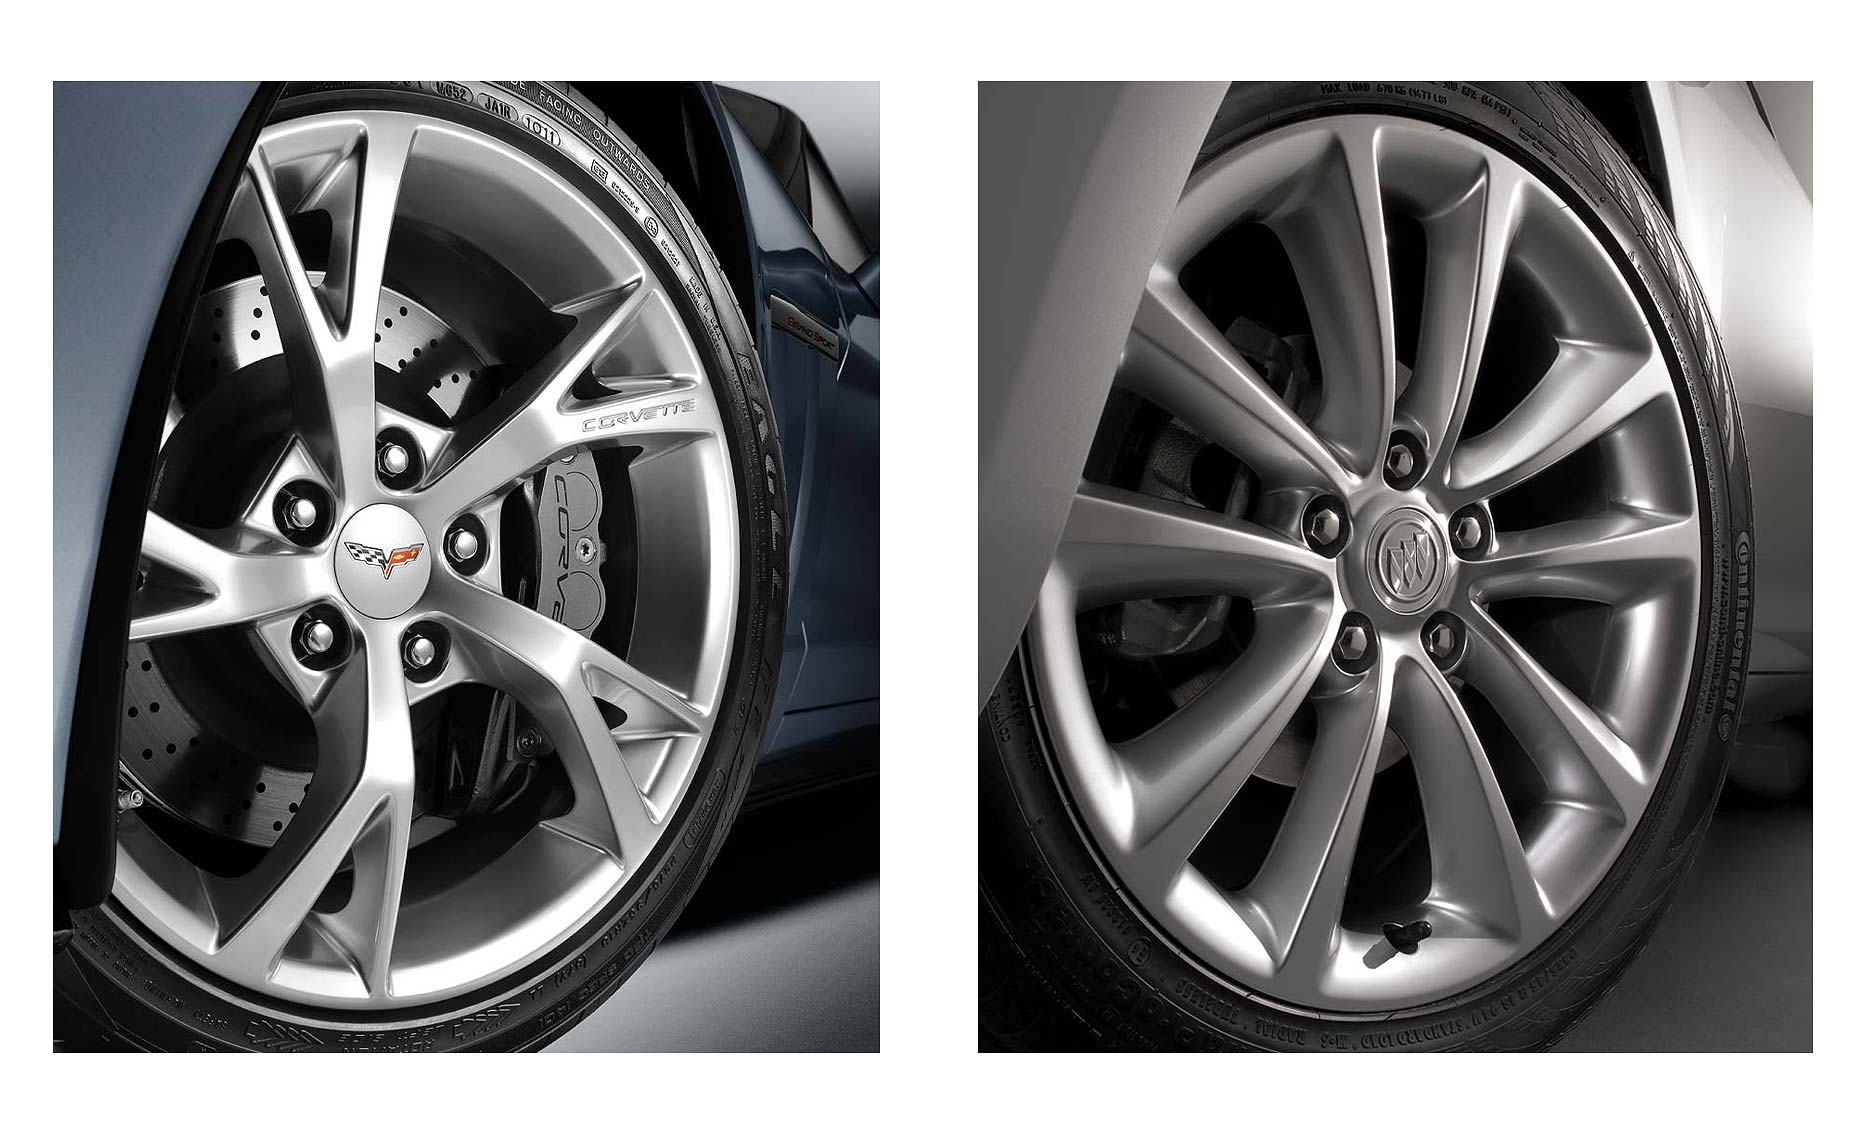 2013 gm accessories-wheels.jpg